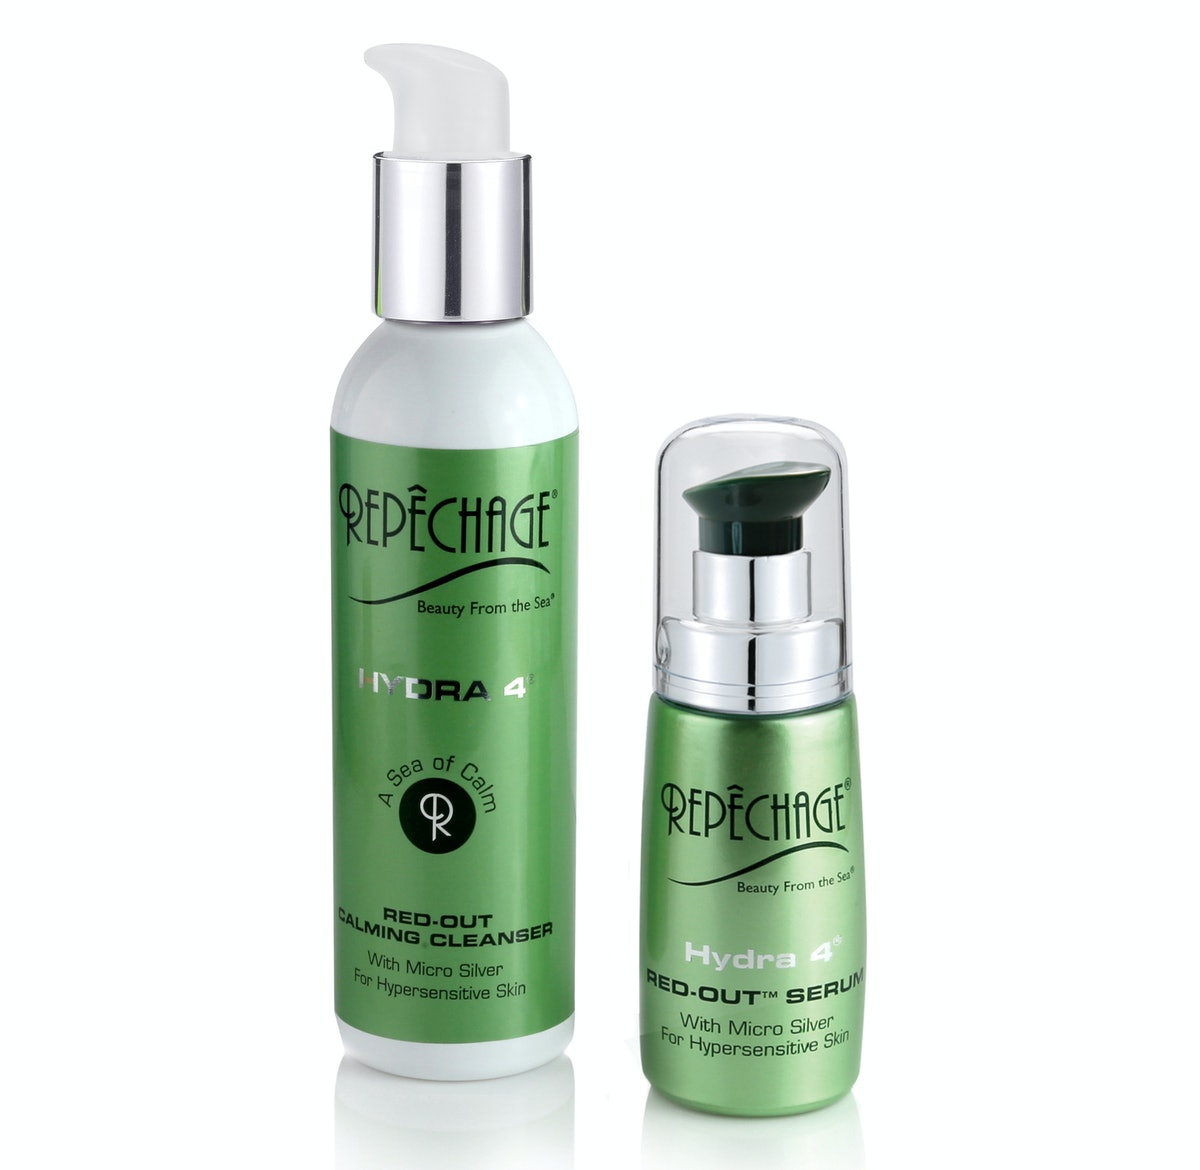 Repechage Hydra-4 Red-Out Calming Cleanser